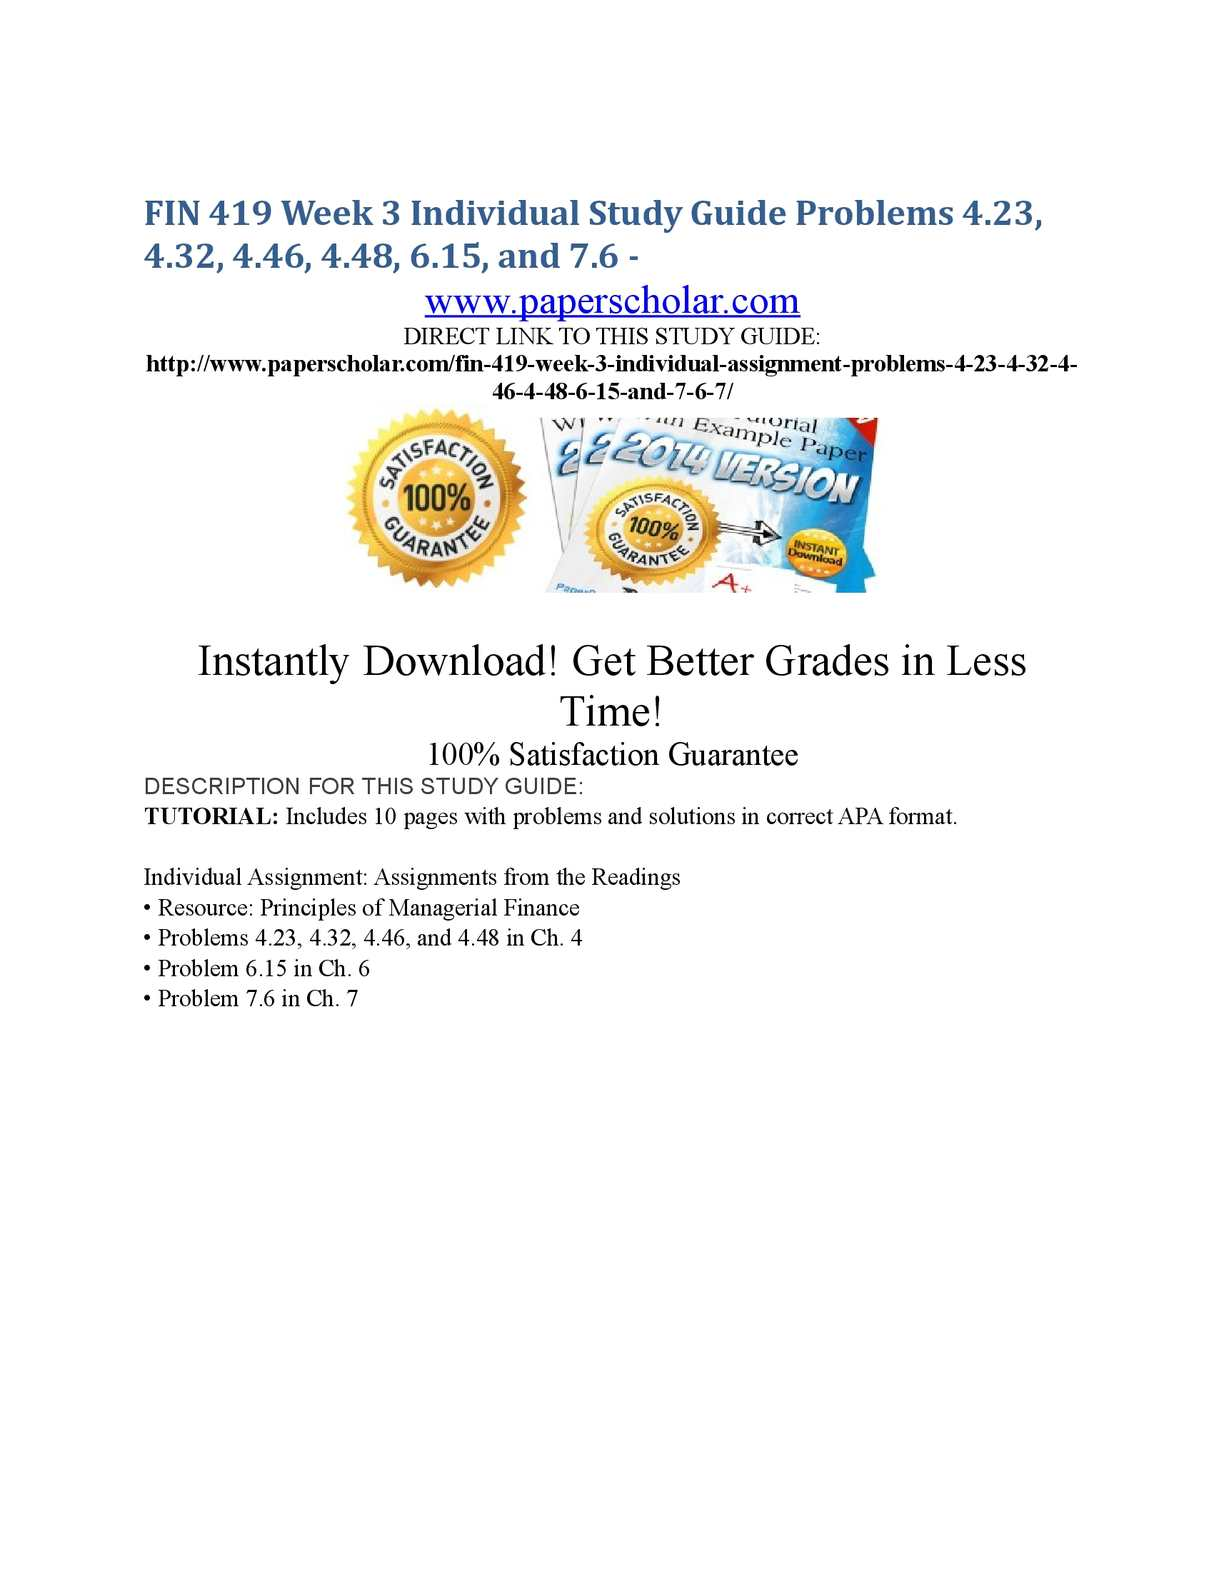 Calaméo - FIN 419 Week 3 Individual Study Guide Problems 4.23, 4.32, 4.46,  4.48, 6.15, and 7.6 -